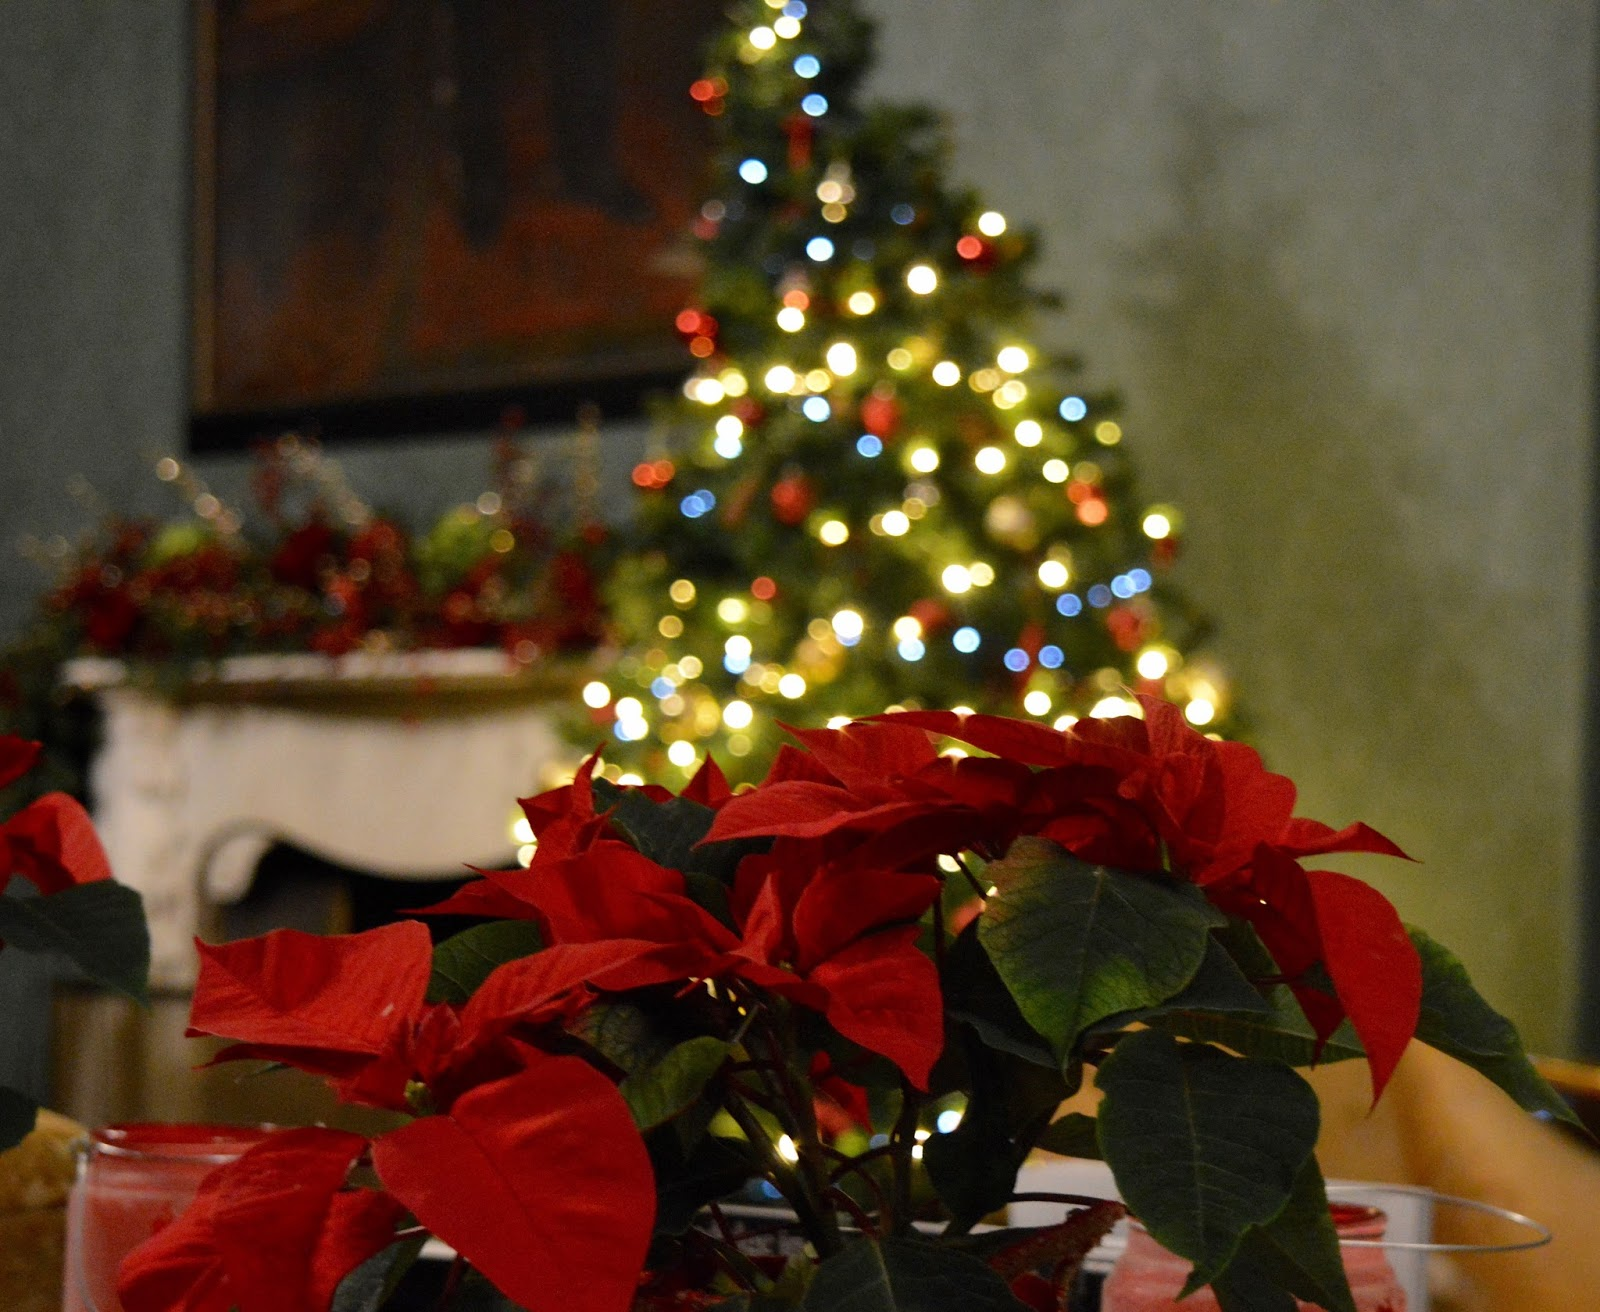 Afternoon tea at Wynyard Hall (with kids) - A Review - Christmas decorations